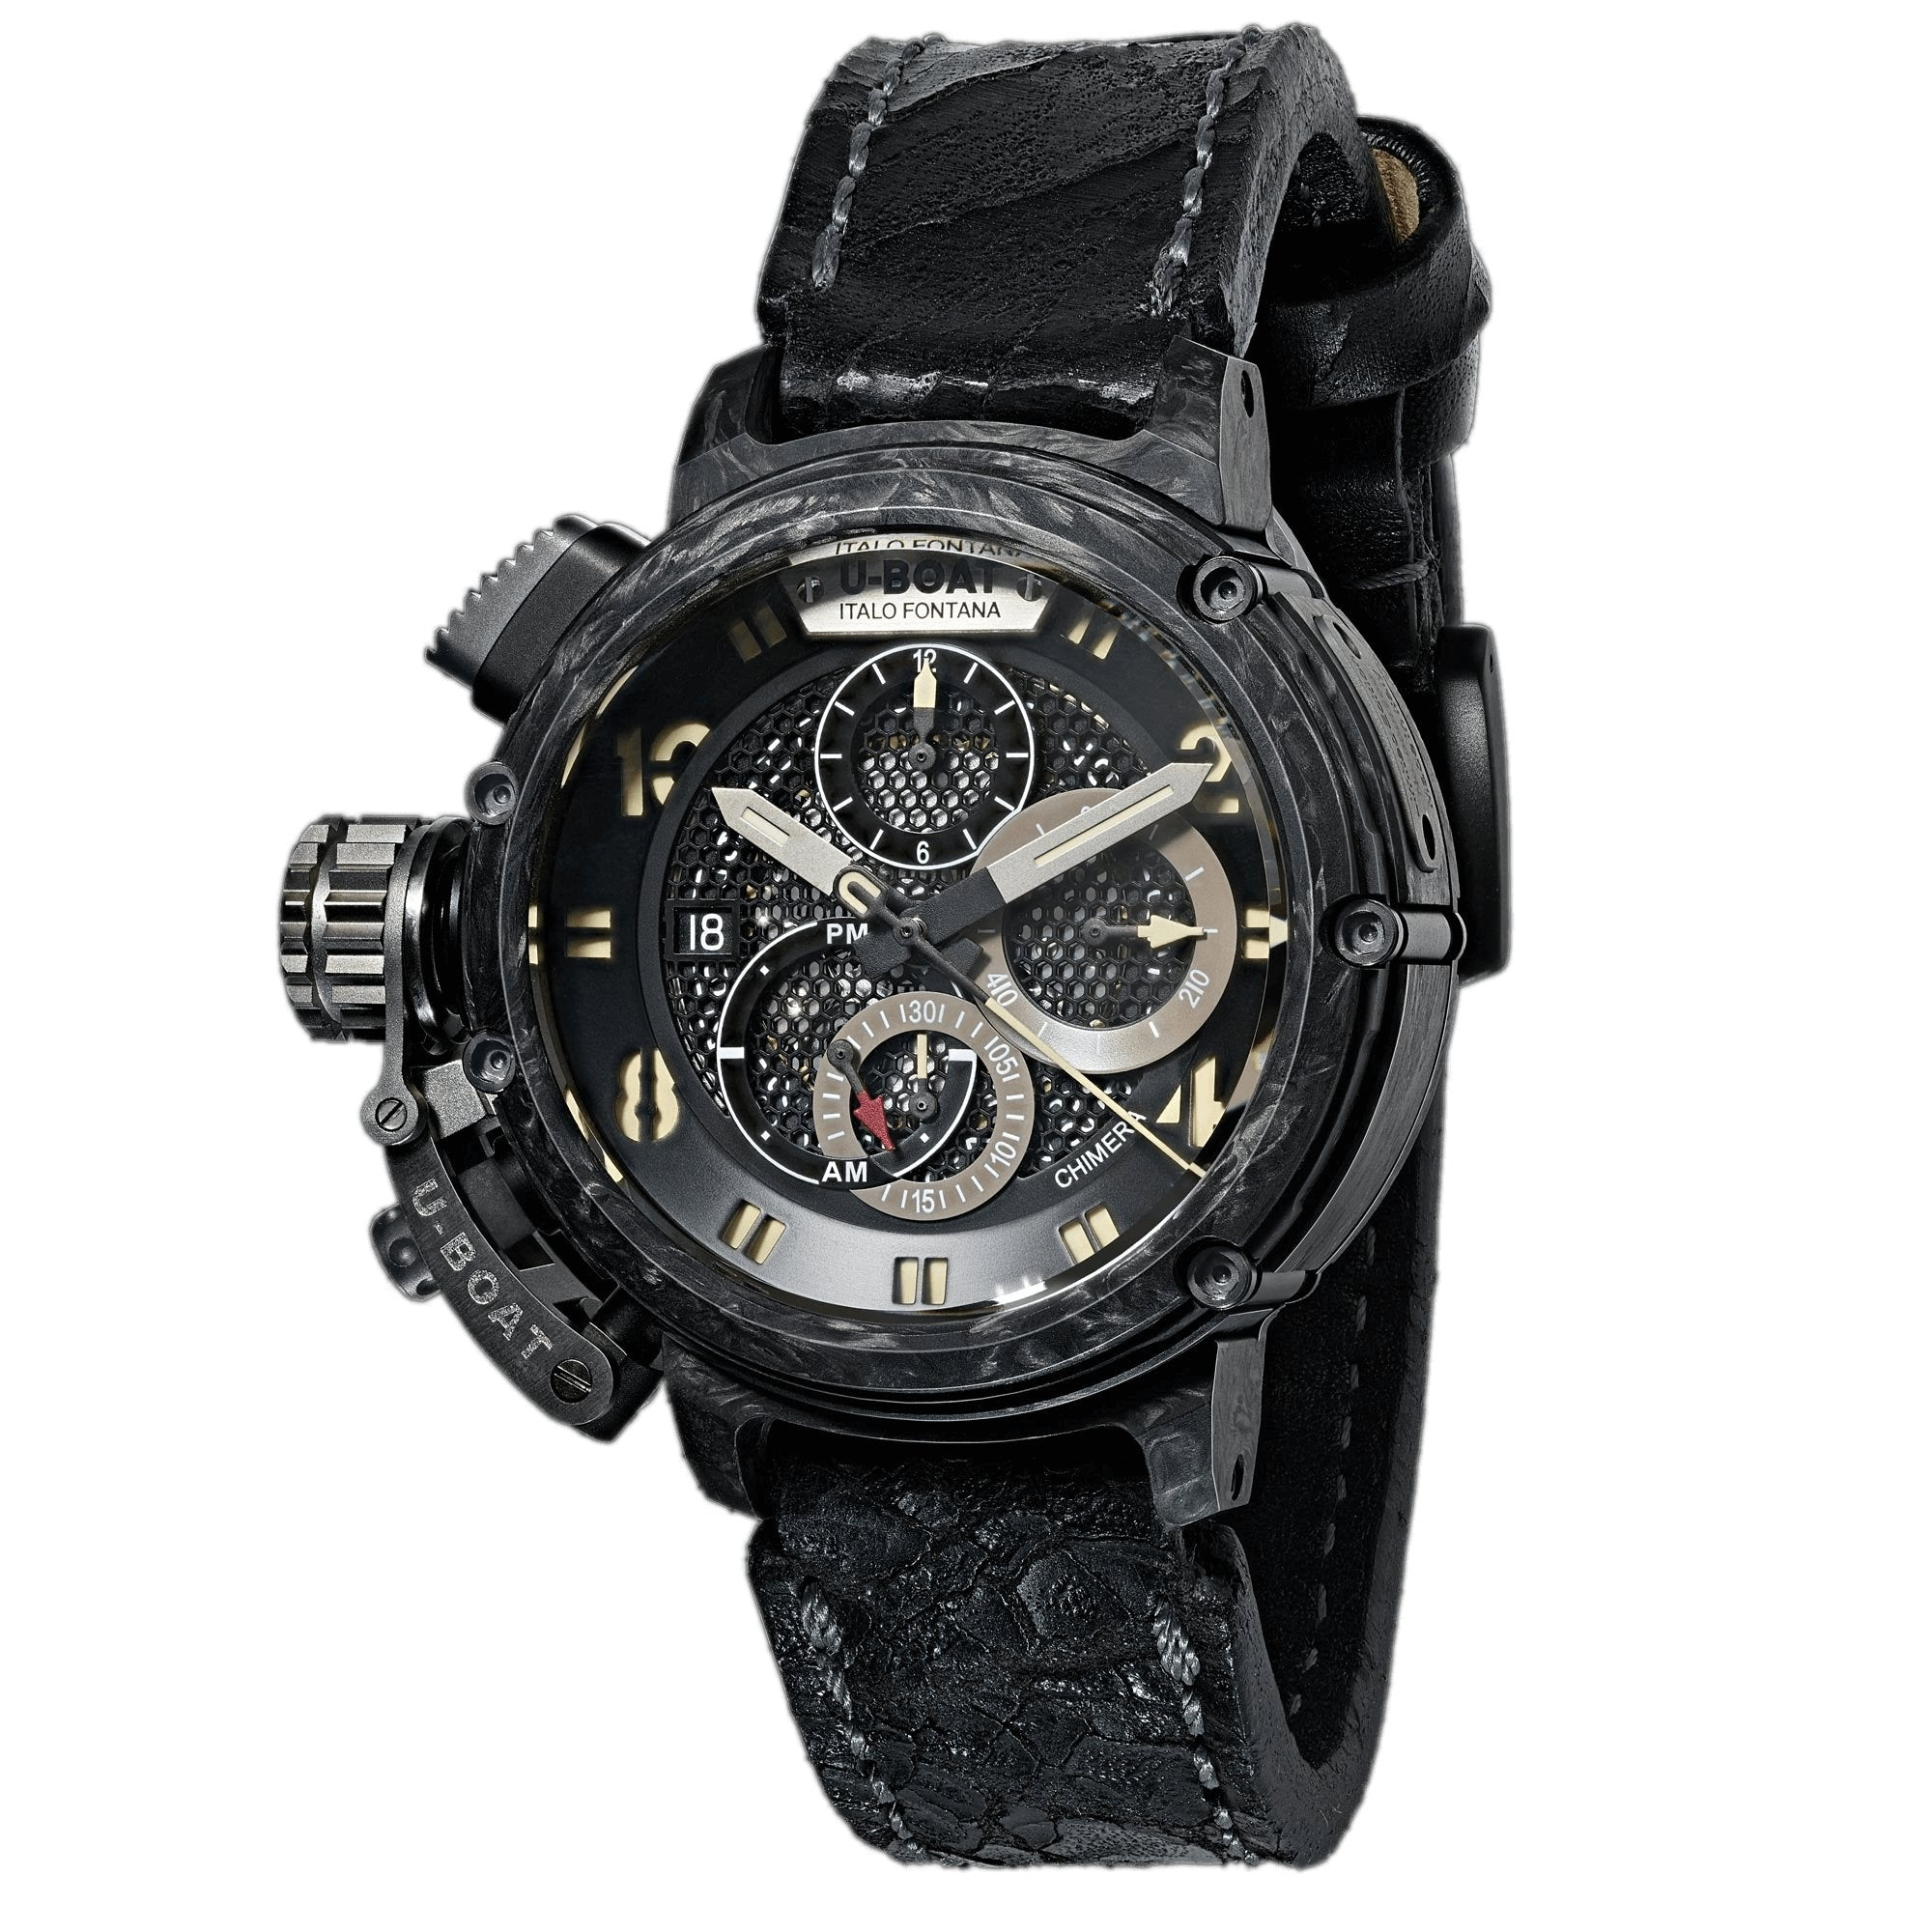 U-Boat Chimera 46 Chronograph Carbon/Titanium Limited Edition - Watches & Crystals